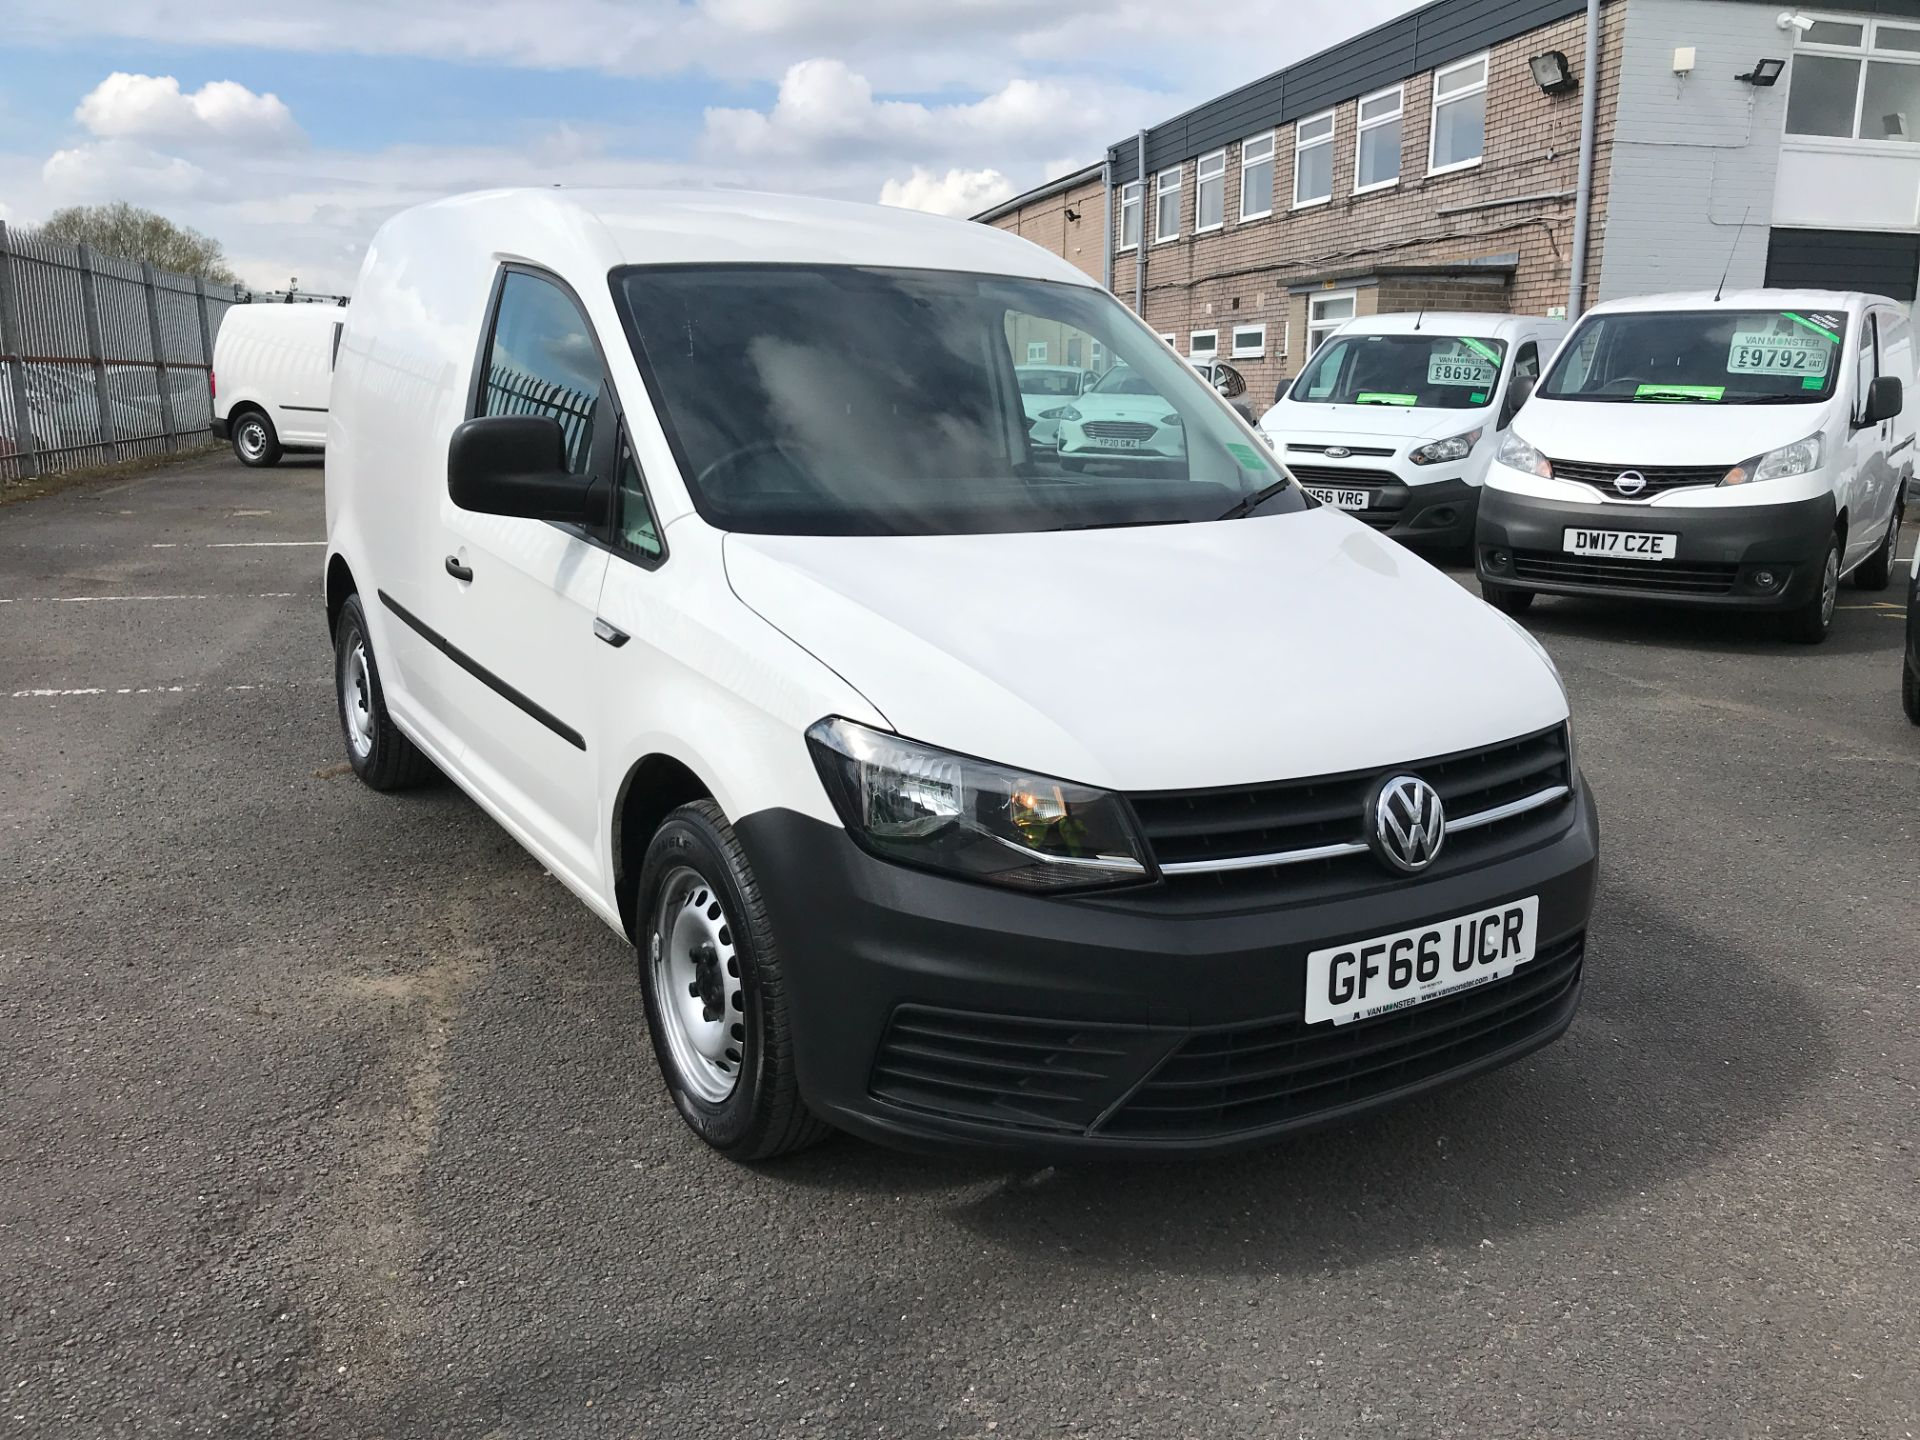 2016 Volkswagen Caddy 1.6TDI BLUEMOTION TECH 75PS STARTLINE EURO 6 (GF66UCR)